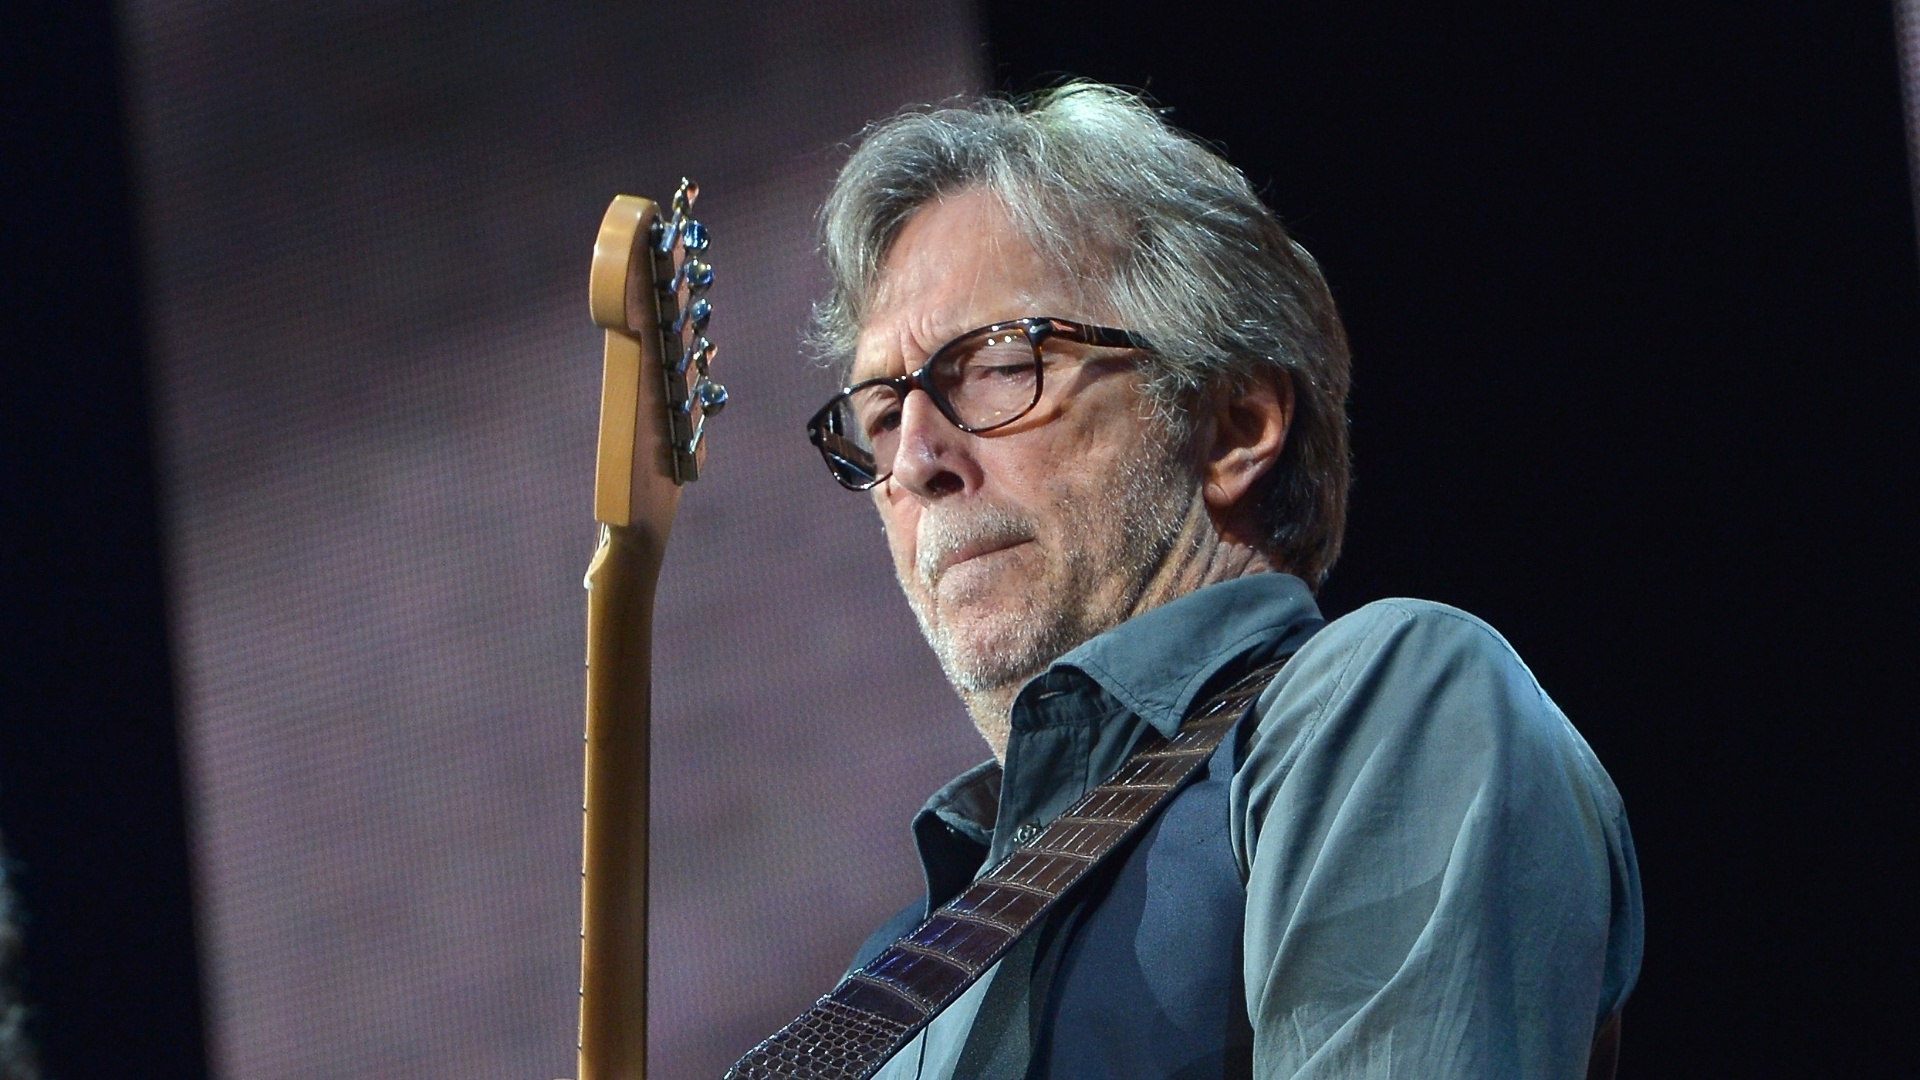 Eric Clapton Wallpapers Images Photos Pictures Backgrounds